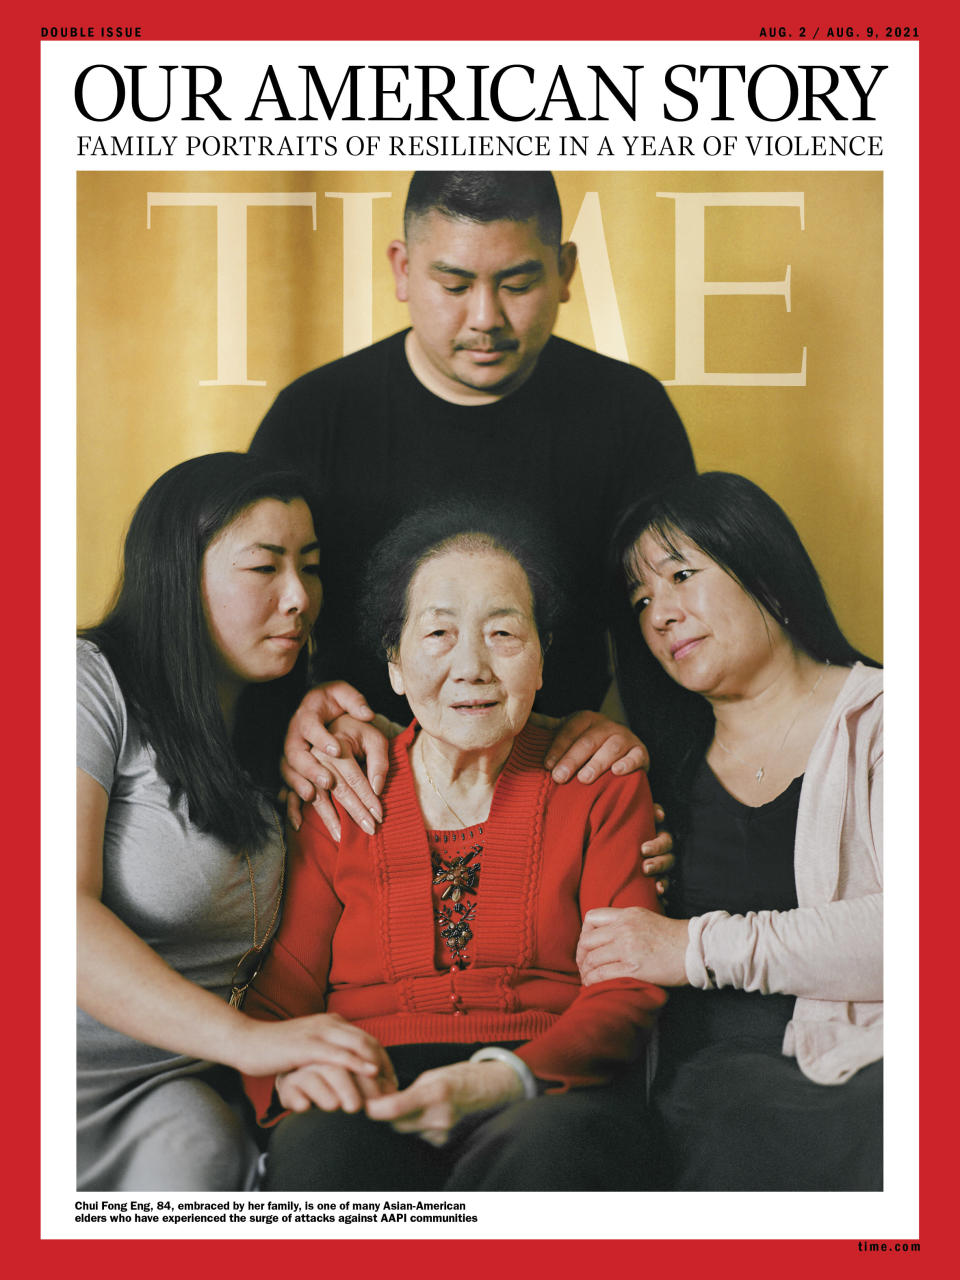 """<strong>'I'M A FIGHTER.' </strong>Growing up in San Francisco, Victoria Eng, 28, left, and her brother Andrew Eng, 31, top, pictured on June 15 in Pacifica, Calif., learned that respecting their elders was part of their Chinese culture. And they had frequent chances to express that value, as their grandparents picked them up from school nearly every day and cared for them while their parents worked. """"They fed us, they made sure that we were home safe, and they were a huge part of our lives from the start,"""" says Victoria. When violence against Asian-American elders rose drastically during the pandemic, Victoria was appalled—and when her own grandmother was attacked, she felt helpless. On May 4, shortly after Chui Fong Eng, center, received her COVID-19 vaccination, the 84-year-old ventured into Chinatown for the first time in over a year to buy groceries. While waiting at a bus stop, she was stabbed through her right arm with a large blade that then entered her chest and punctured a lung. Another Asian-American senior at the bus stop was also stabbed. The Engs clung to one another as their matriarch underwent surgery. """"I cried, and I cried, and I cried,"""" says Chui Fong's daughter-in-law Linda Lim, right. """"I couldn't believe that she survived this."""" Less surprised was Chui Fong, who, as the eldest of her seven siblings, has always been tough. After arriving in the U.S. from Hong Kong in 1963, she sewed clothes in a factory until she was able to sponsor her parents and siblings. """"I'm a fighter,"""" she says. Linda, 56, says the attack brought the family closer, after years of distance following her divorce from Victoria and Andrew's father. """"It made us realize how important family is,"""" she says.<span class=""""copyright"""">Photograph by Emanuel Hahn for TIME</span>"""